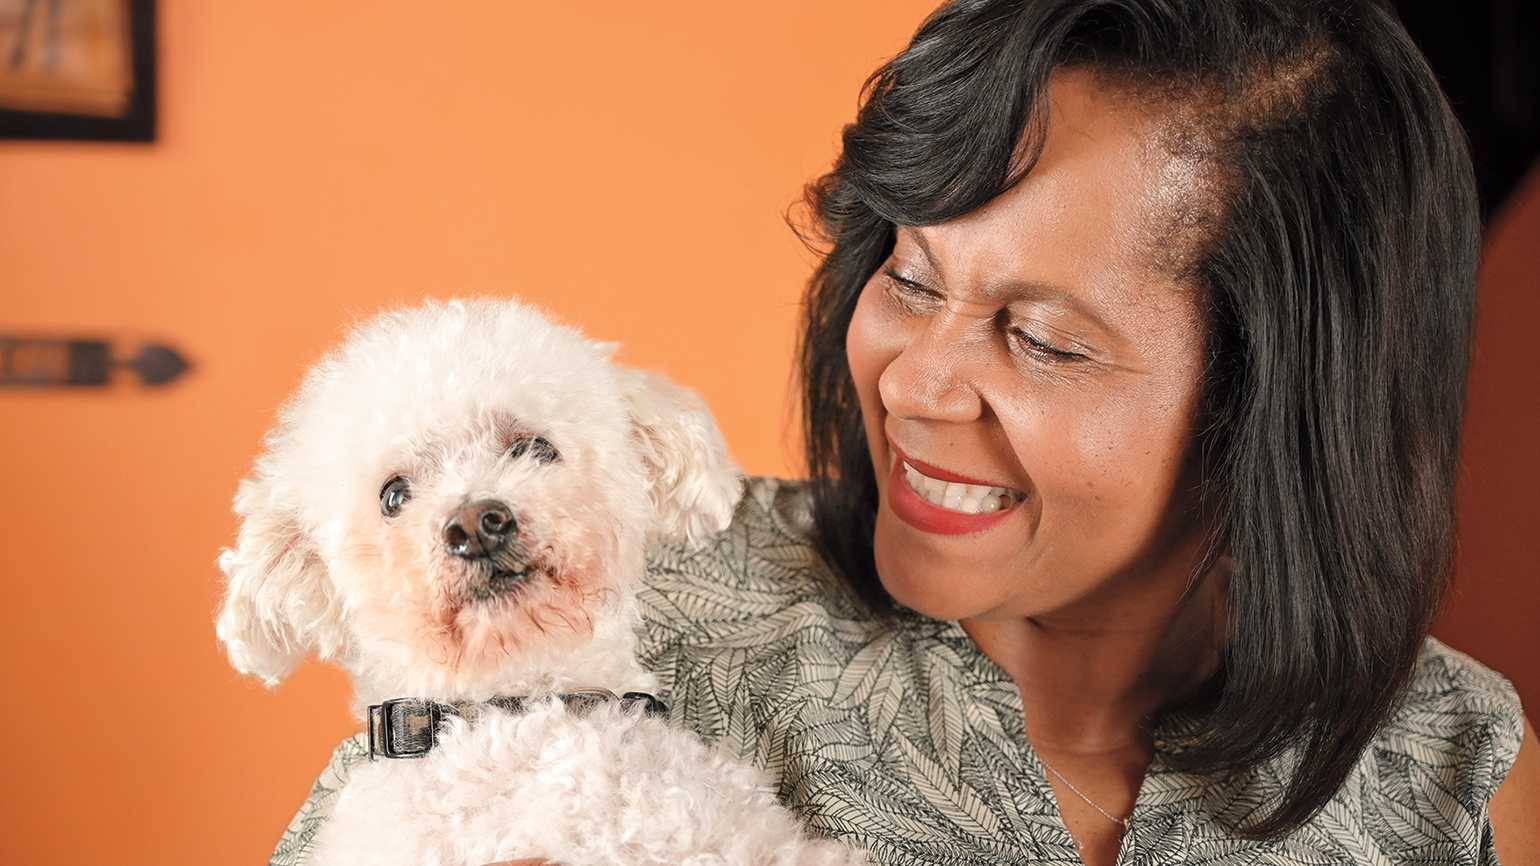 'He always knew where Mom was,' Edwina says about Beethoven